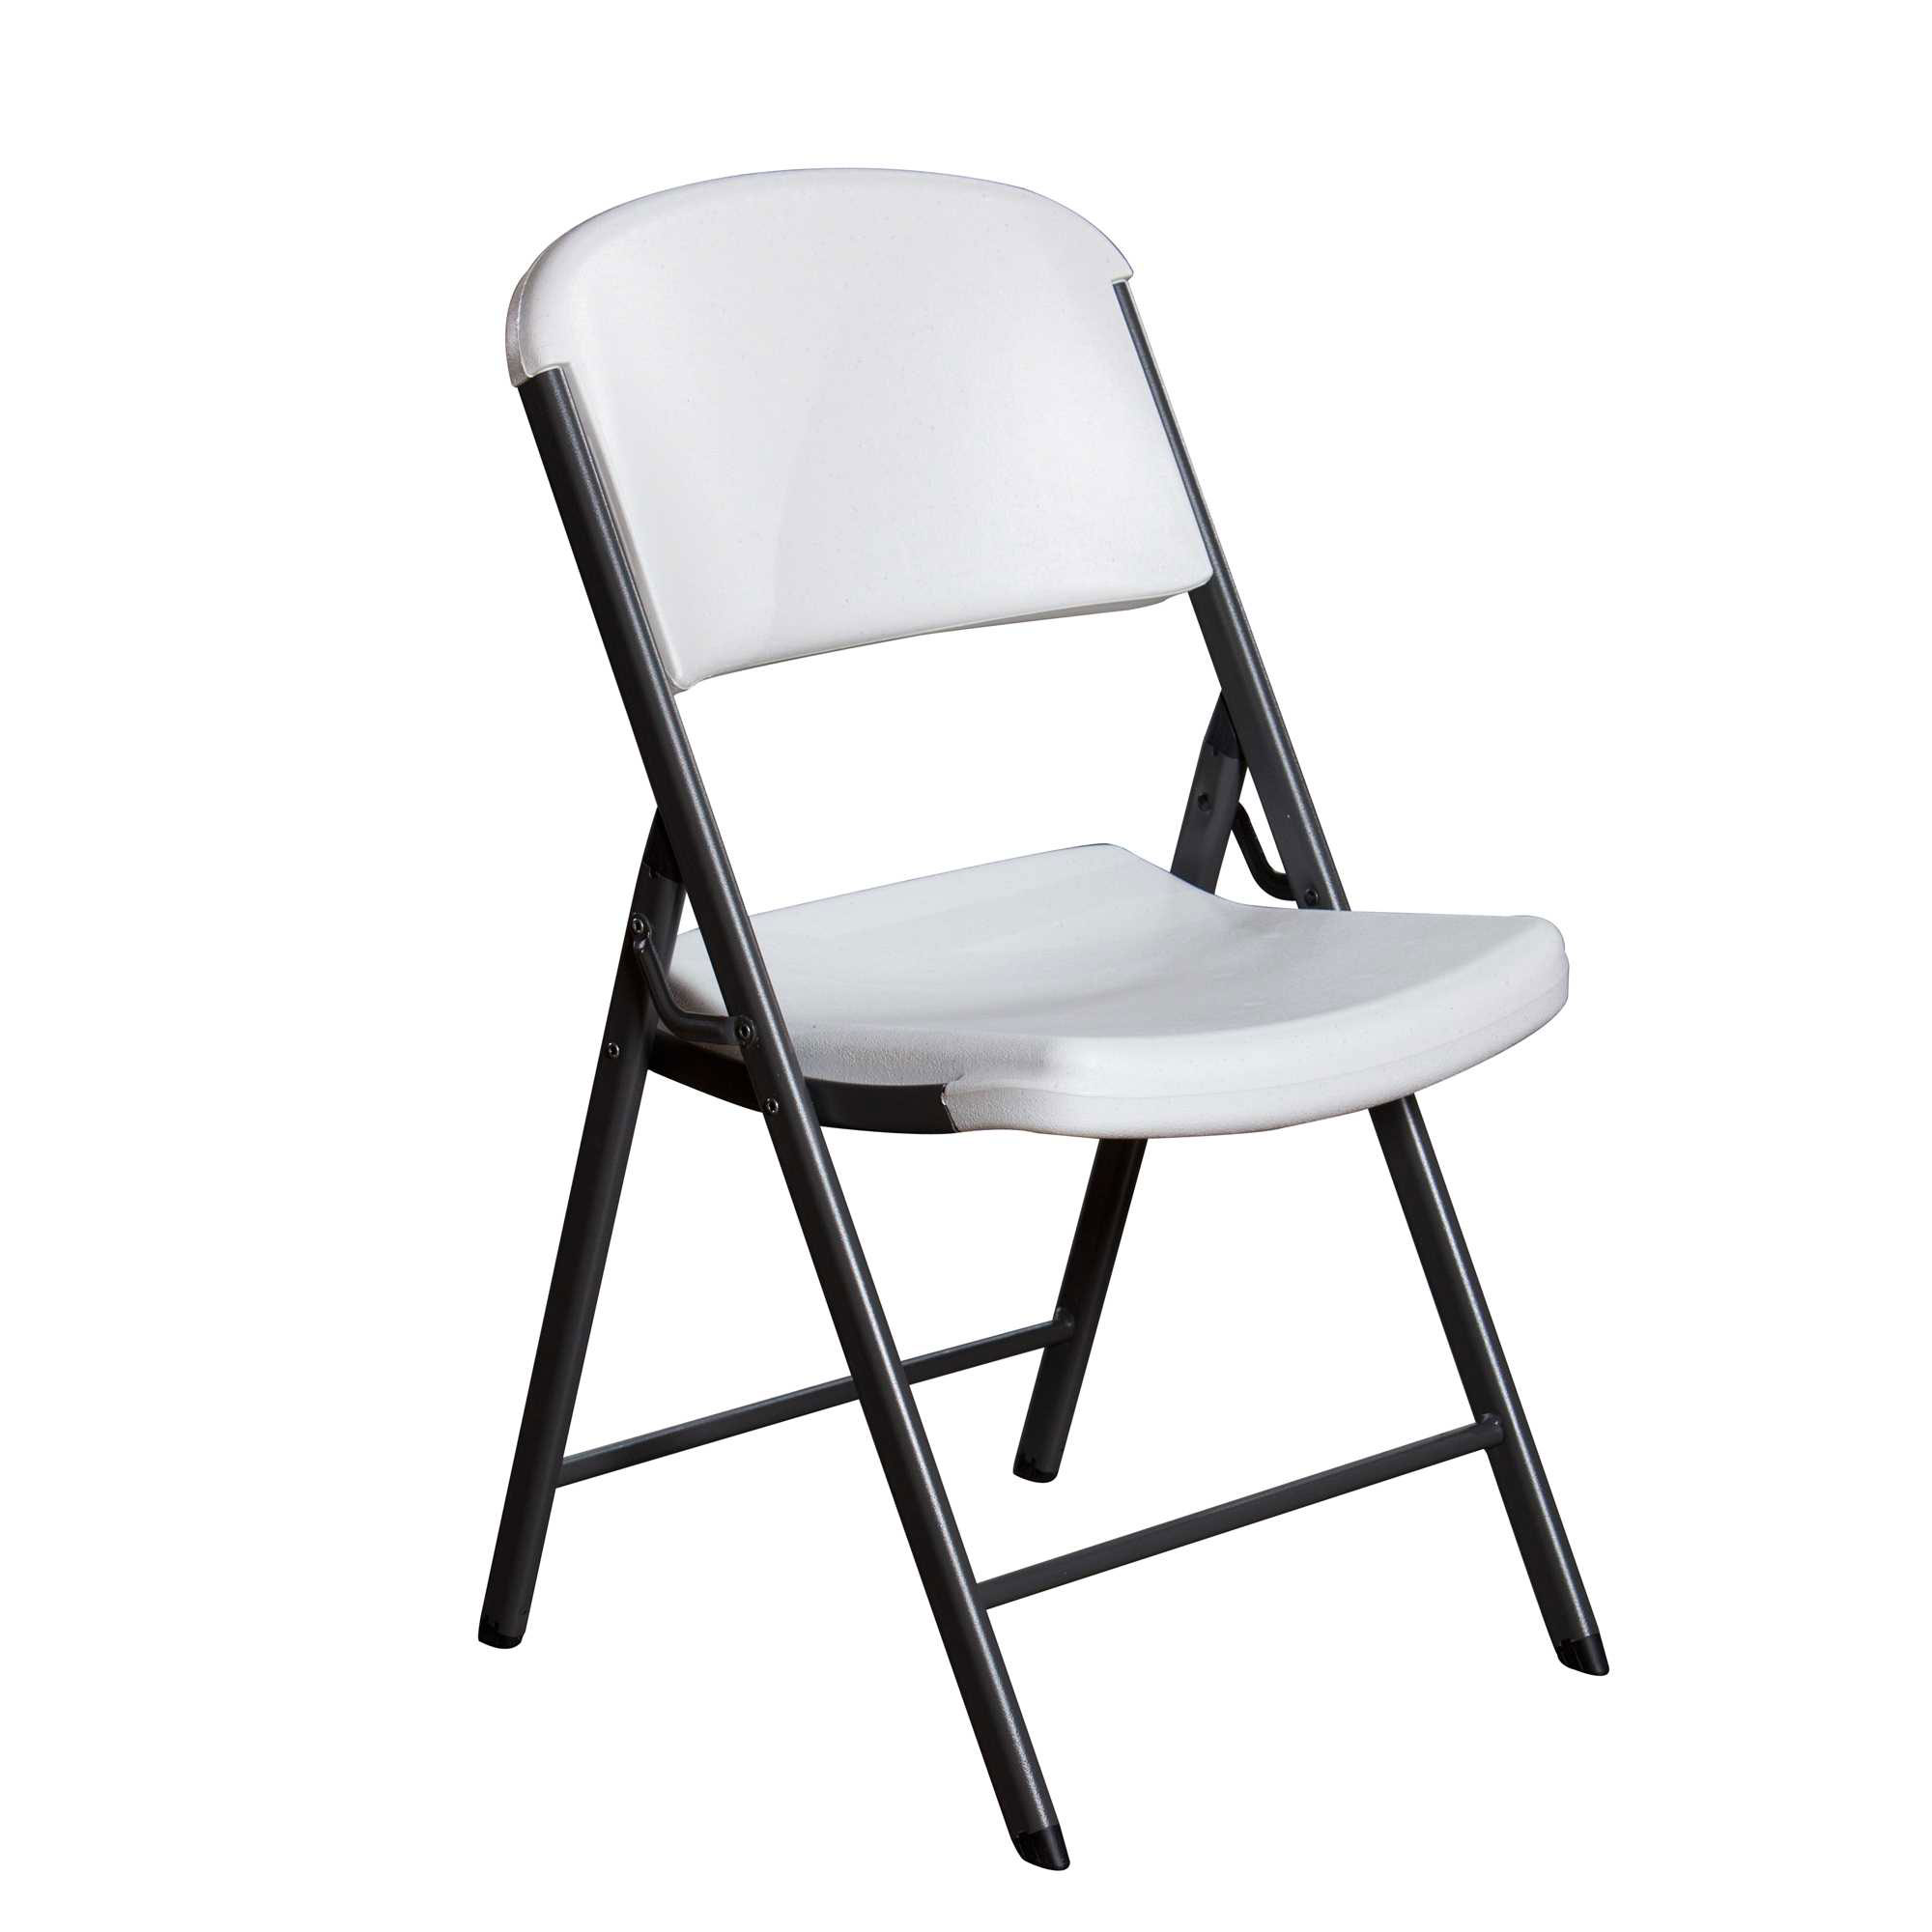 Lucite Folding Chairs 32 Pack Lifetime Chairs White Plastic Sale Today In Bulk